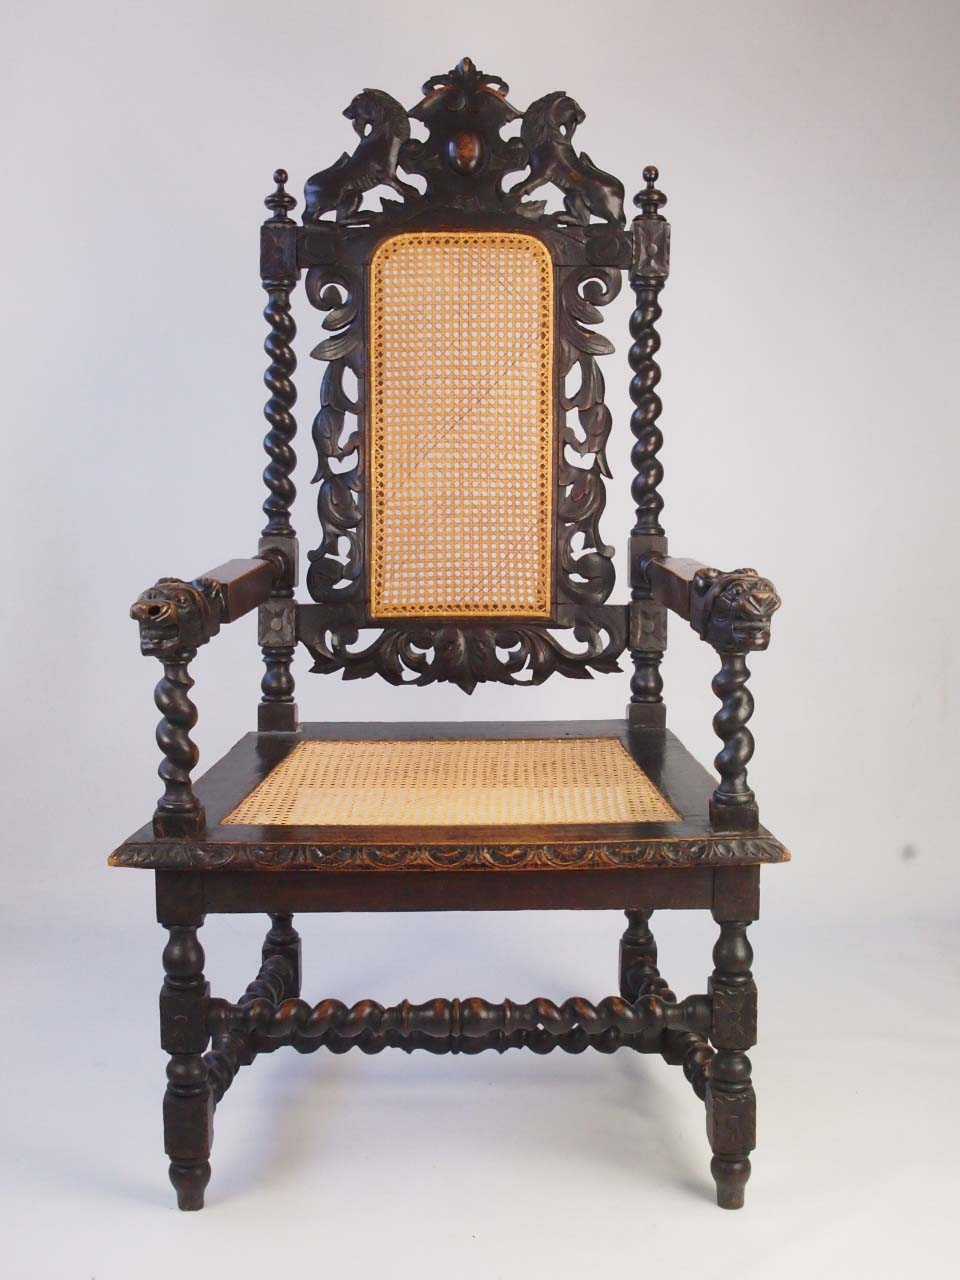 Large Antique Victorian Gothic Revival Throne Chair